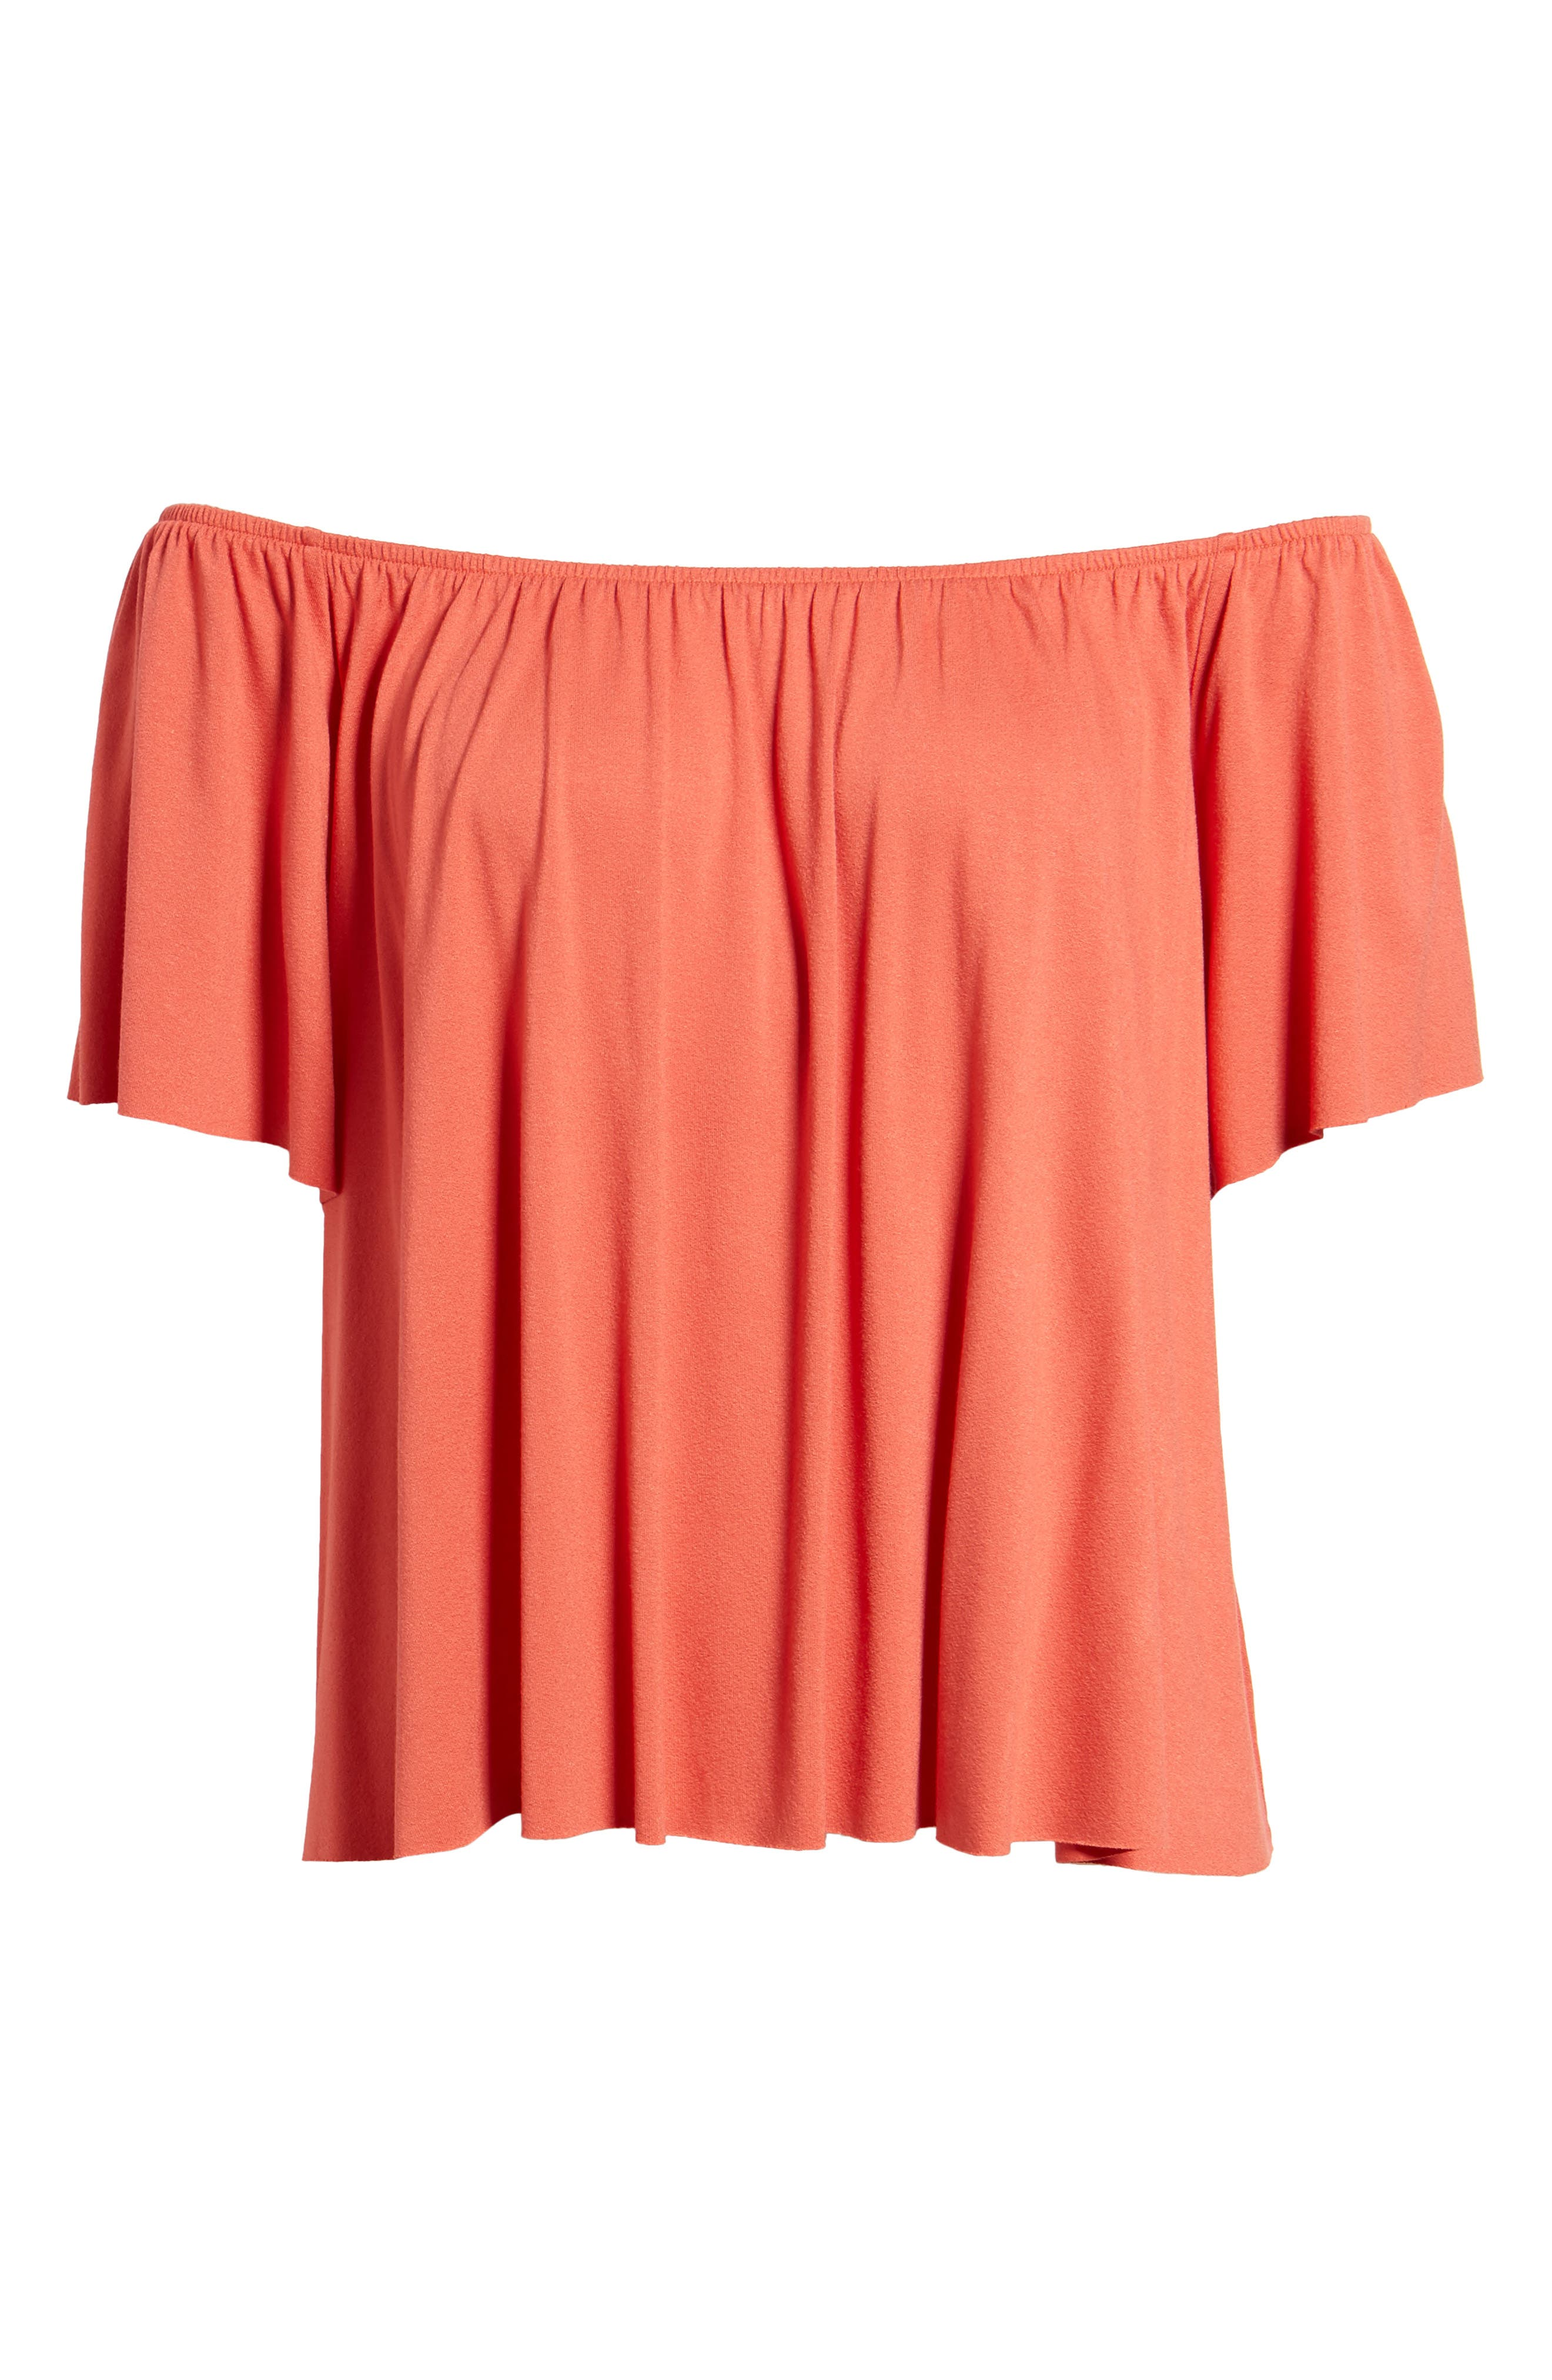 Off the Shoulder Top,                             Alternate thumbnail 38, color,